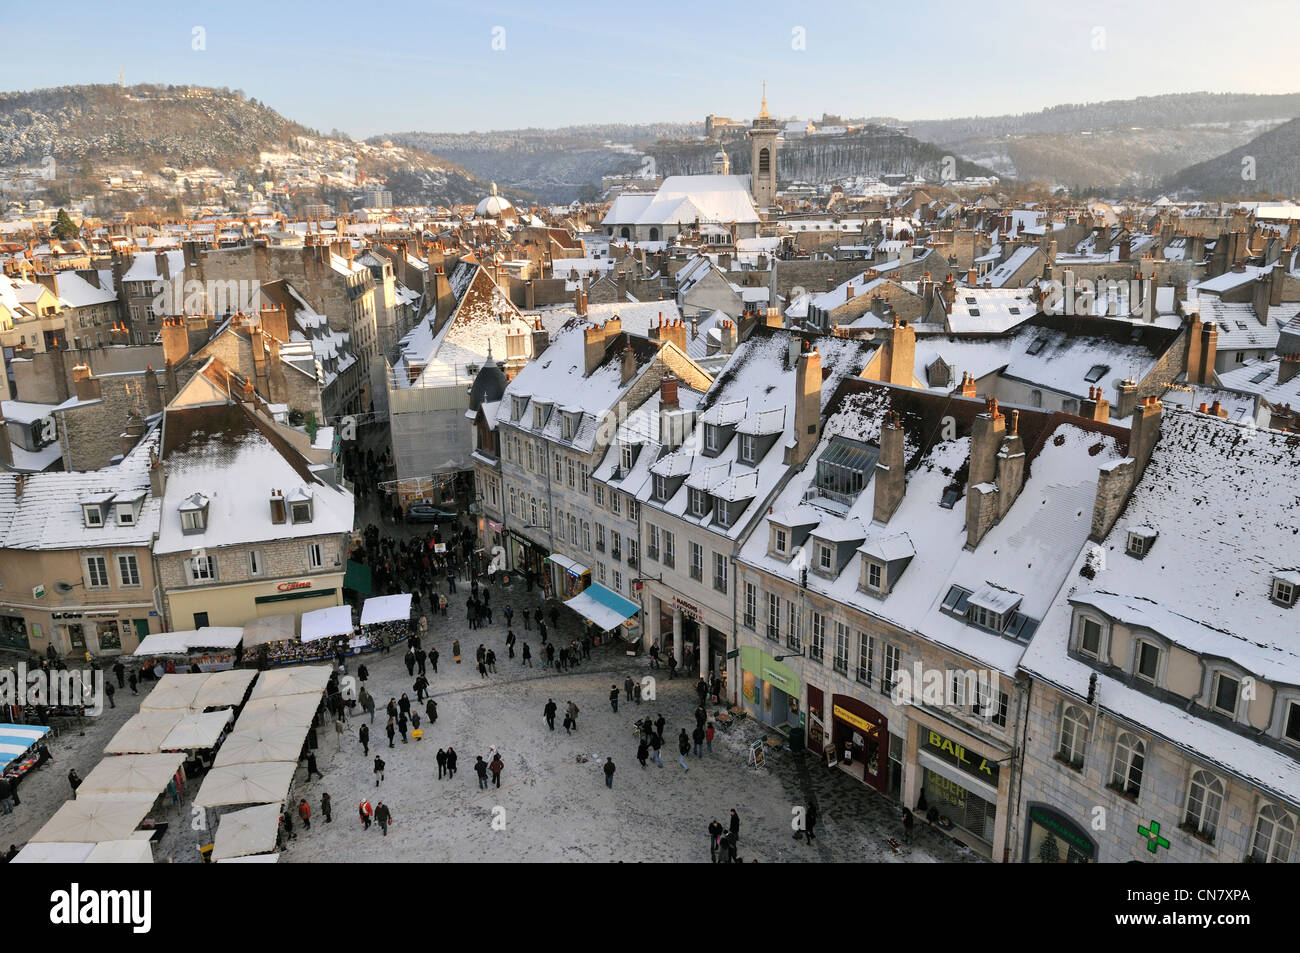 france doubs besancon revolution square christmas market city stock photo 47503186 alamy. Black Bedroom Furniture Sets. Home Design Ideas